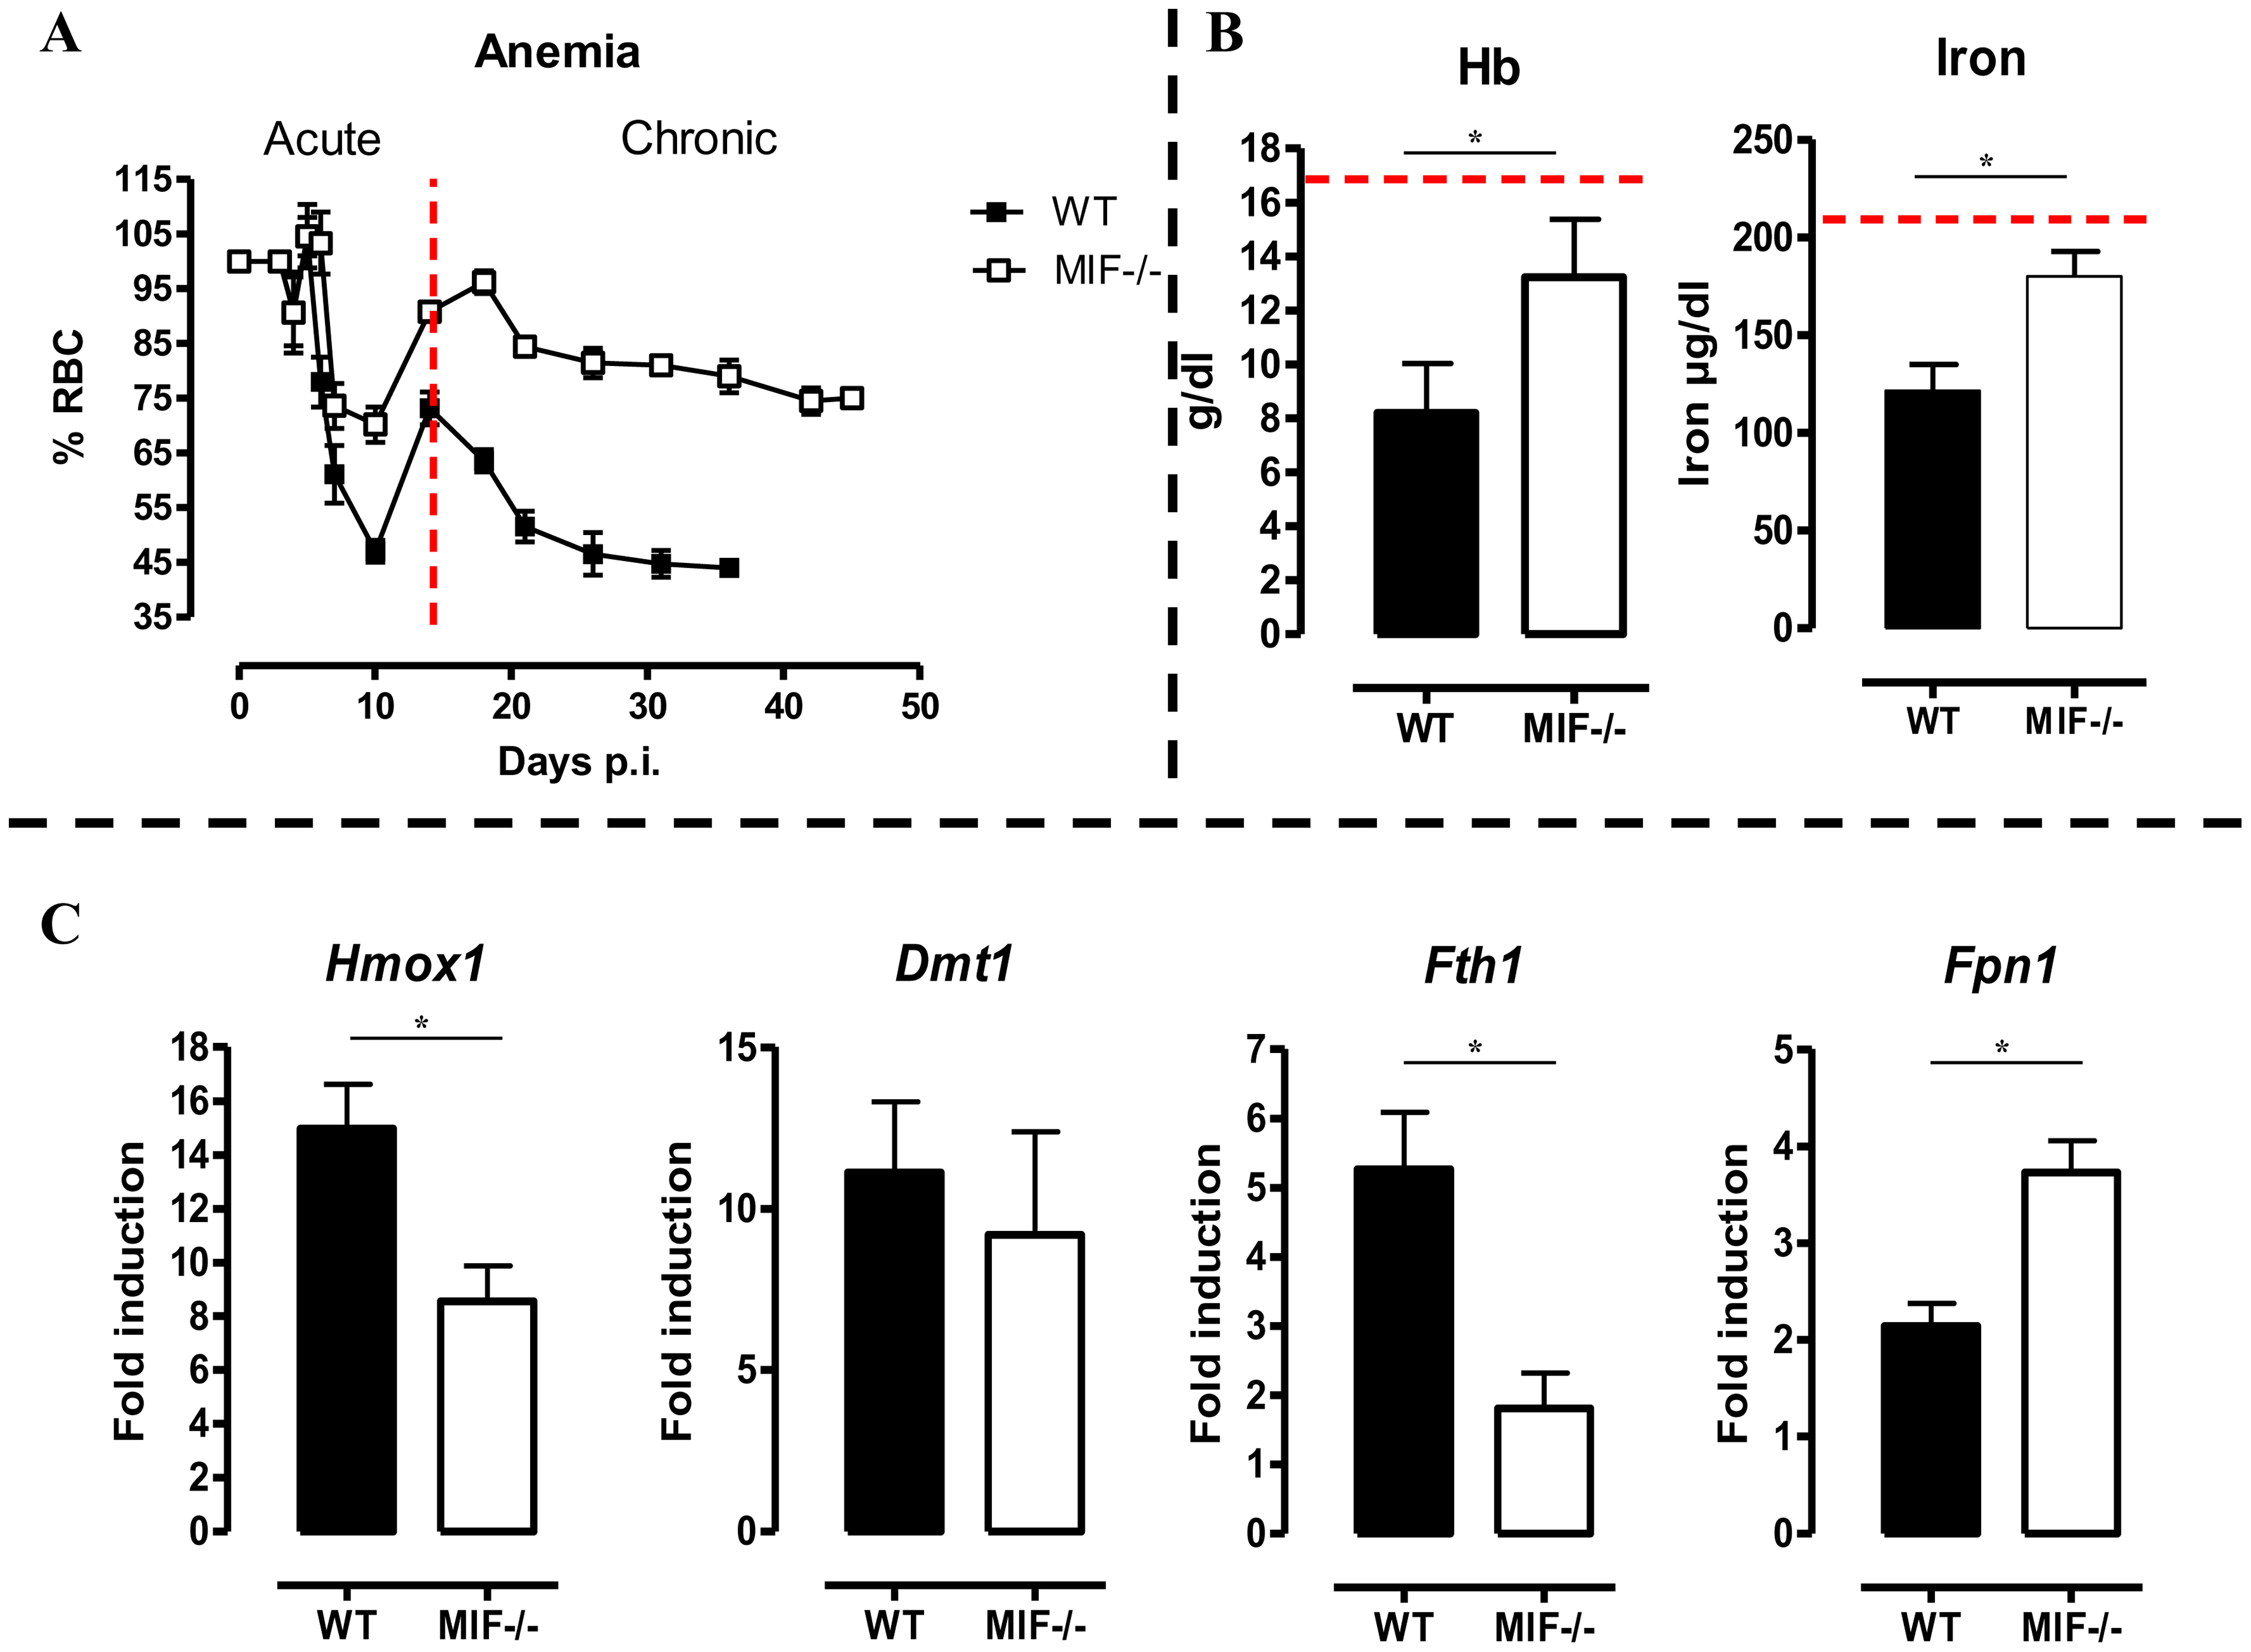 MIF deficiency correlates with reduced anemia, restored hemoglobin/serum iron levels and restored iron homeostasis during <i>T. brucei</i> infection.